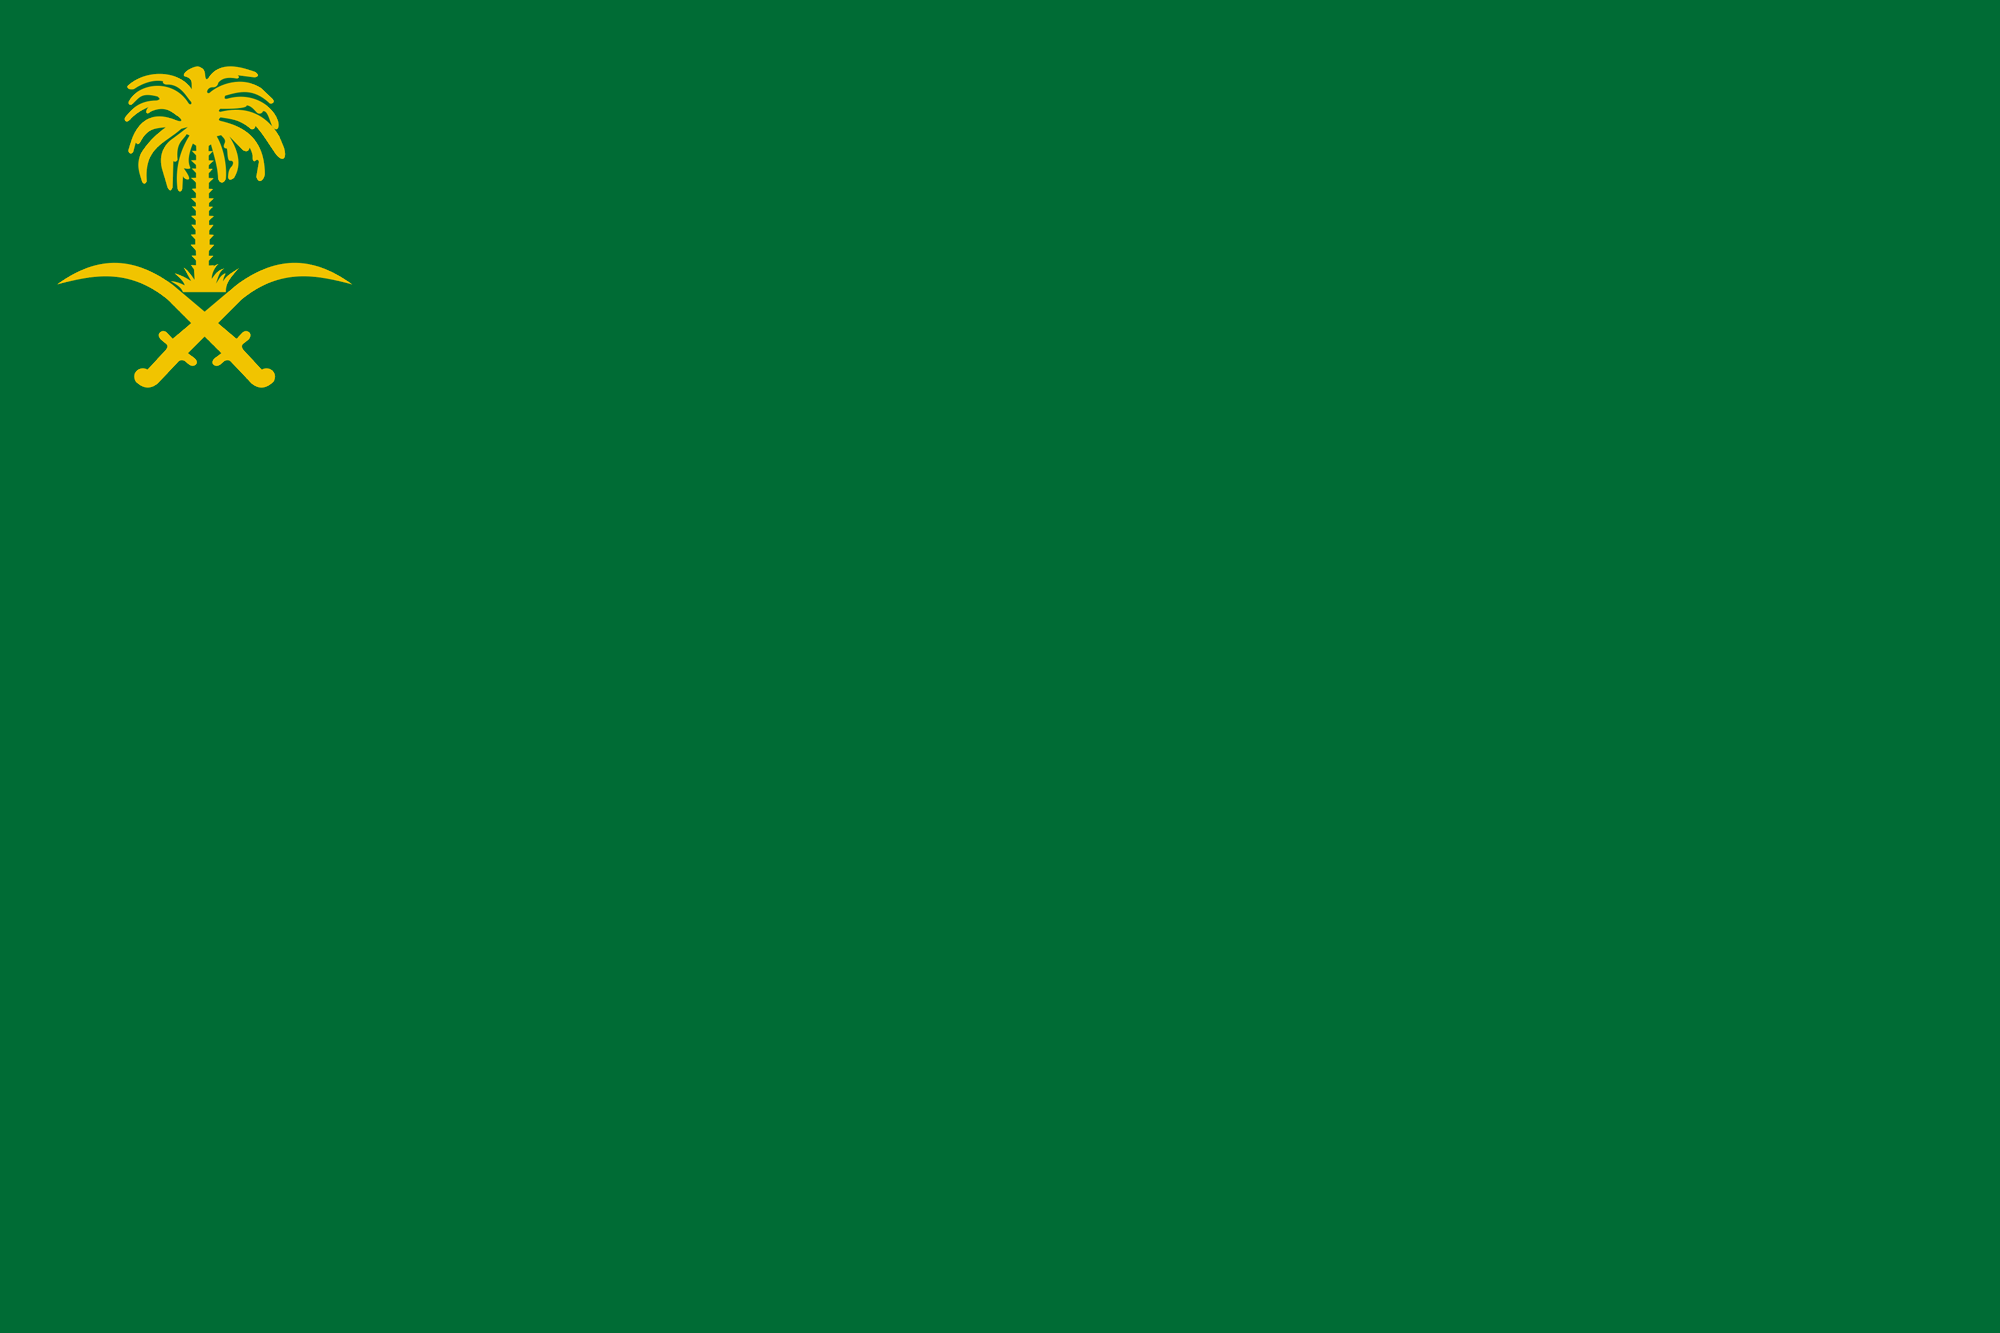 Saudi Arabia (Civil flag)